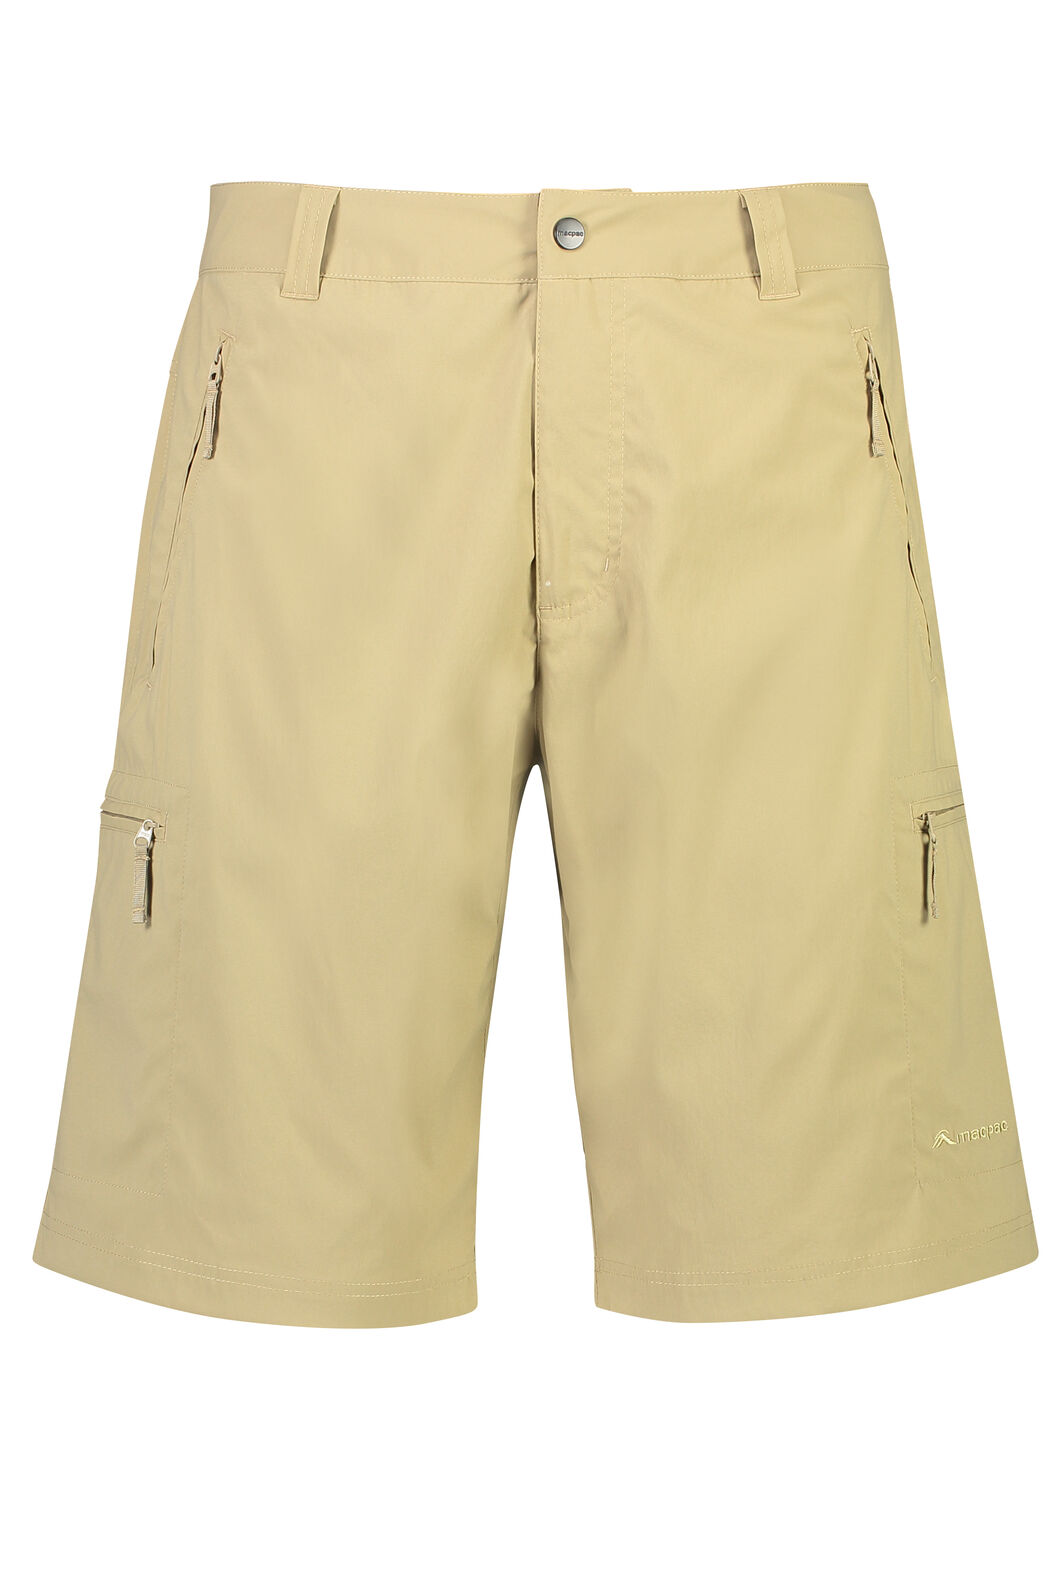 Drift Shorts - Men's, Lead Grey, hi-res